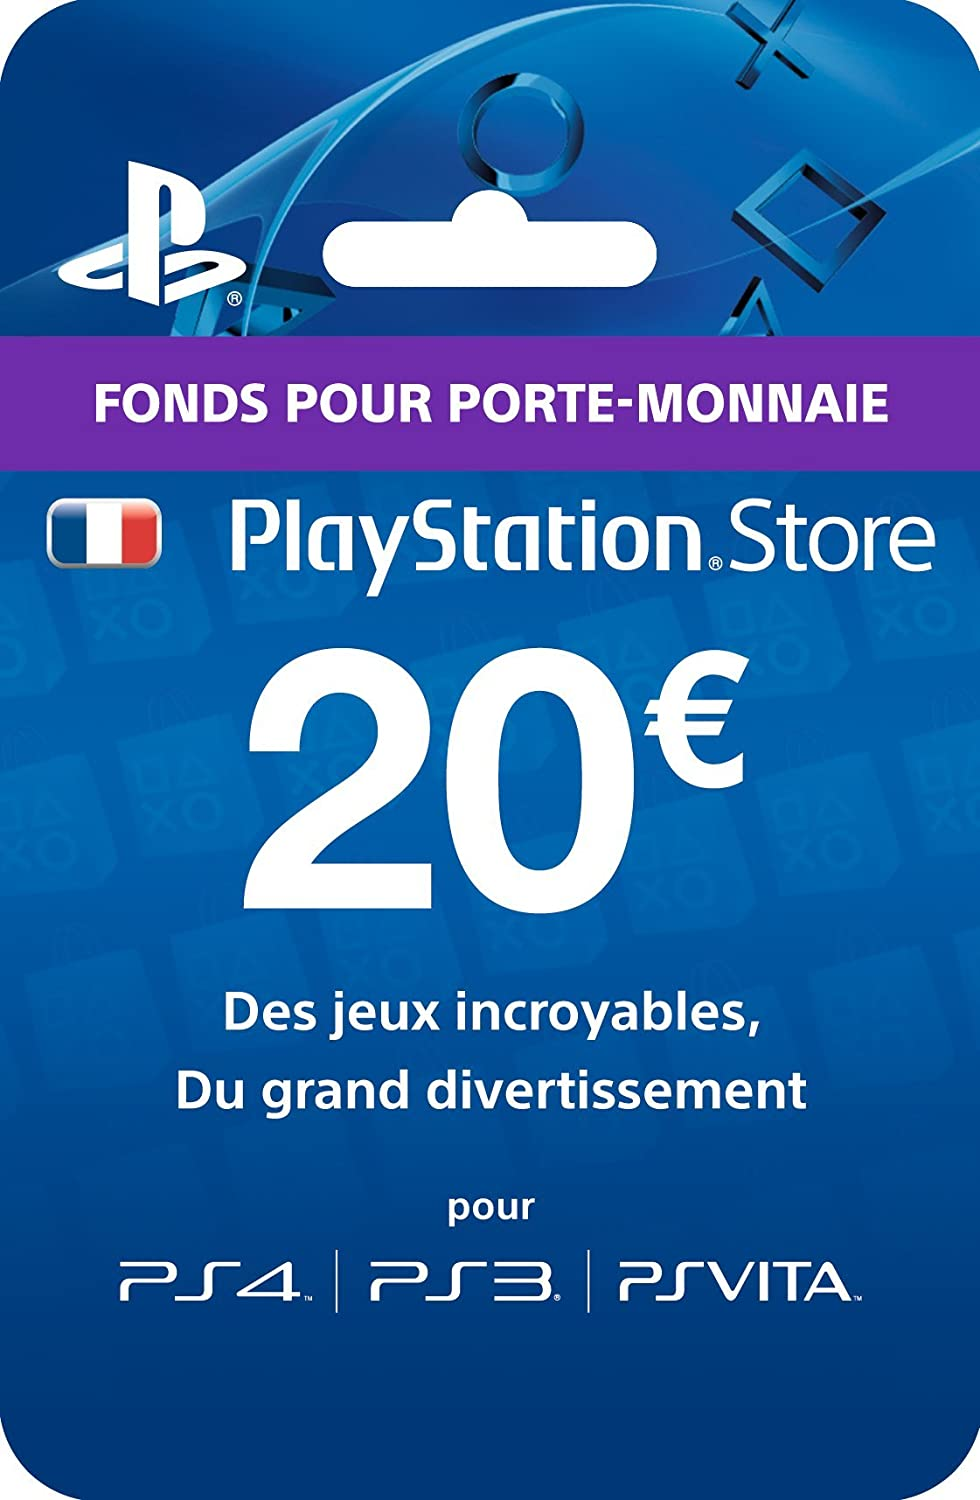 Sony Tarjeta Playstation Store - 20 €: Amazon.es: Informática